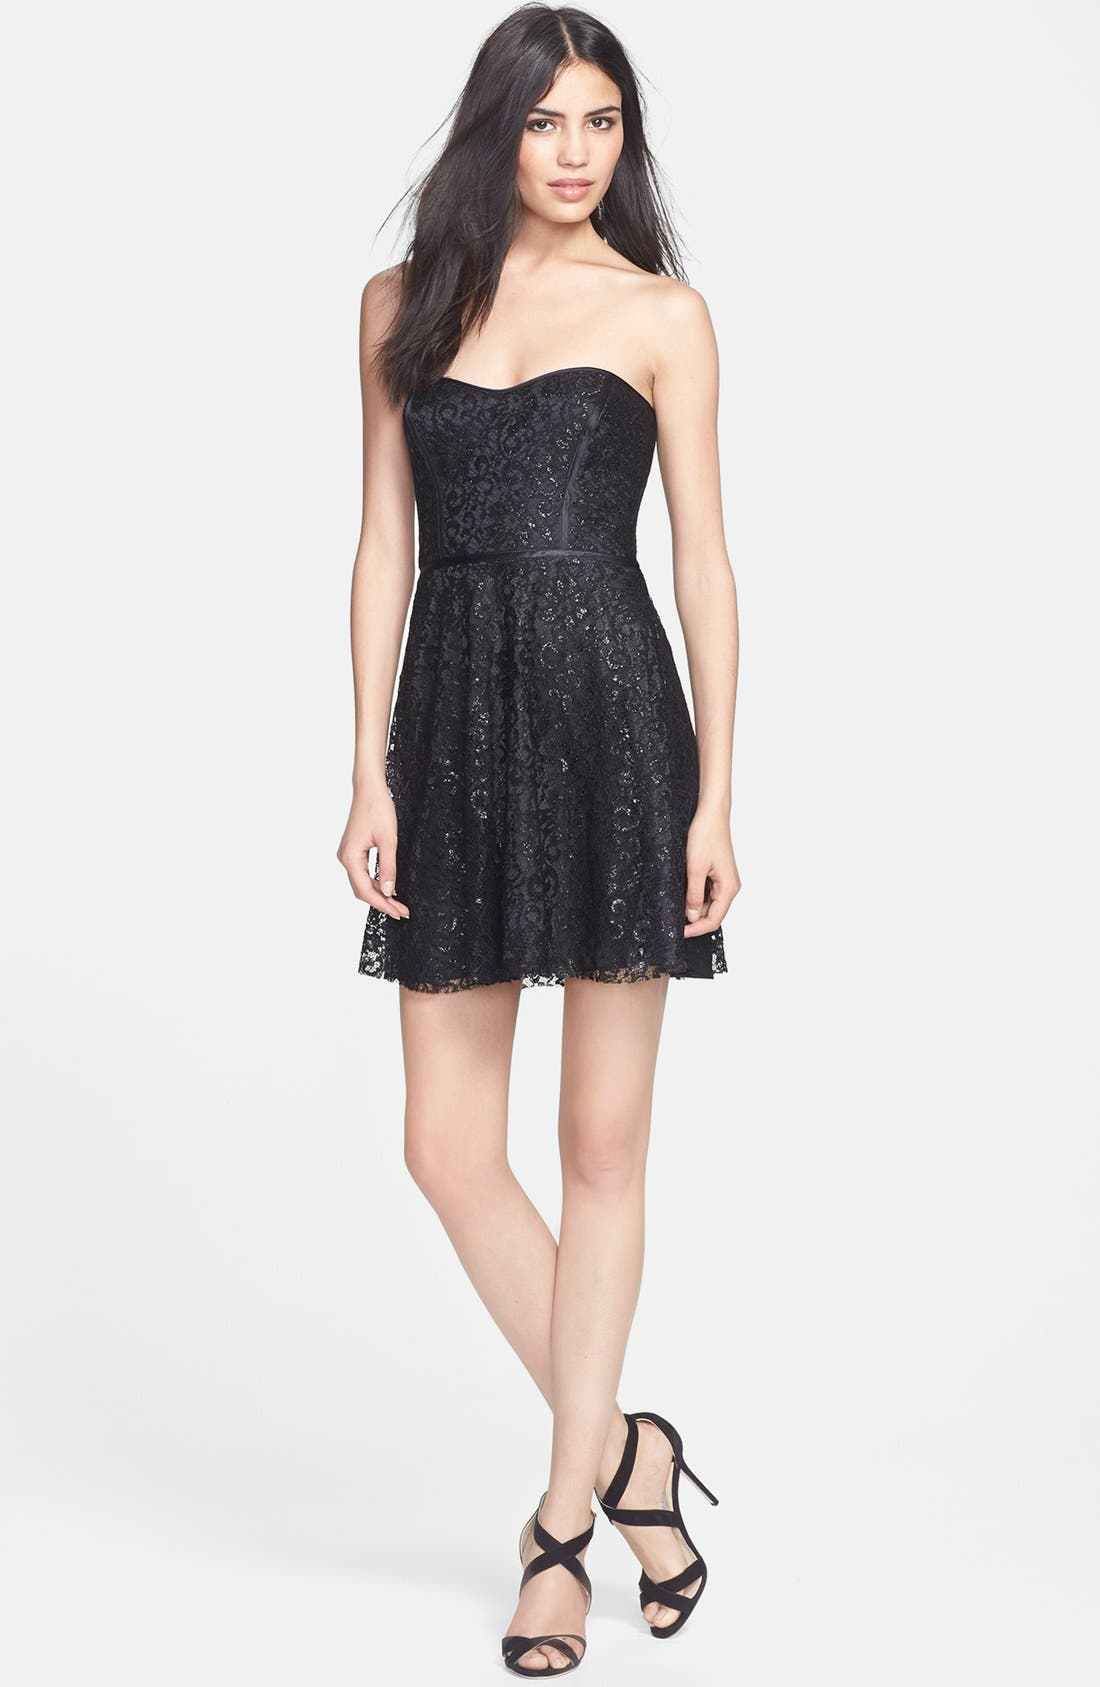 Alternate Image 1 Selected - Parker 'Eva' Metallic Lace Fit & Flare Dress